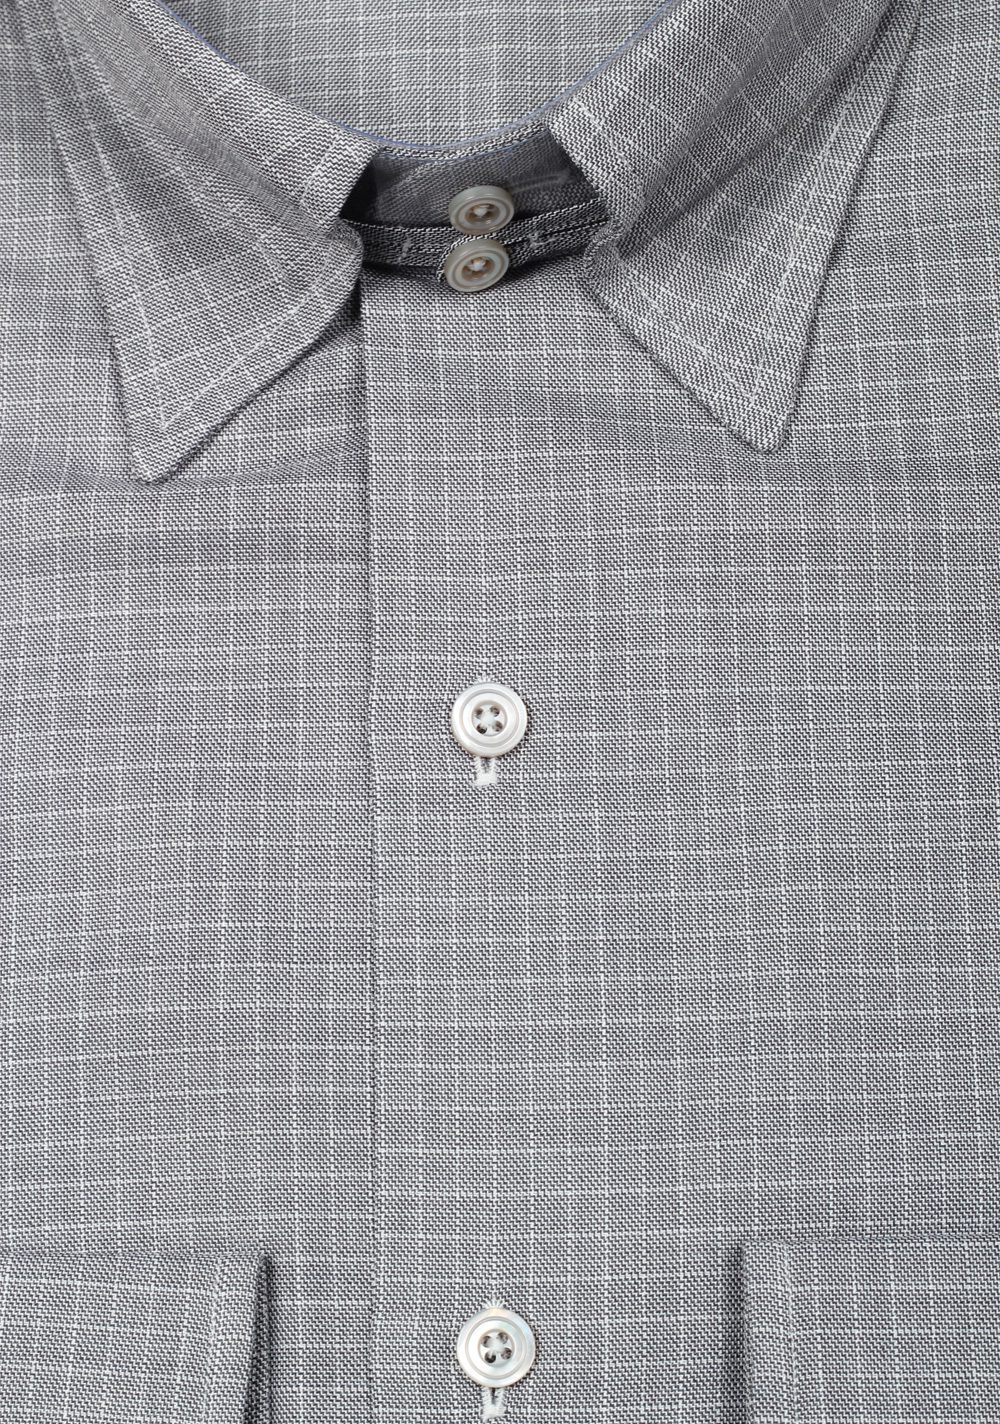 TOM FORD Checked Gray High Collar Dress Shirt Size 40 / 15,75 U.S. | Costume Limité